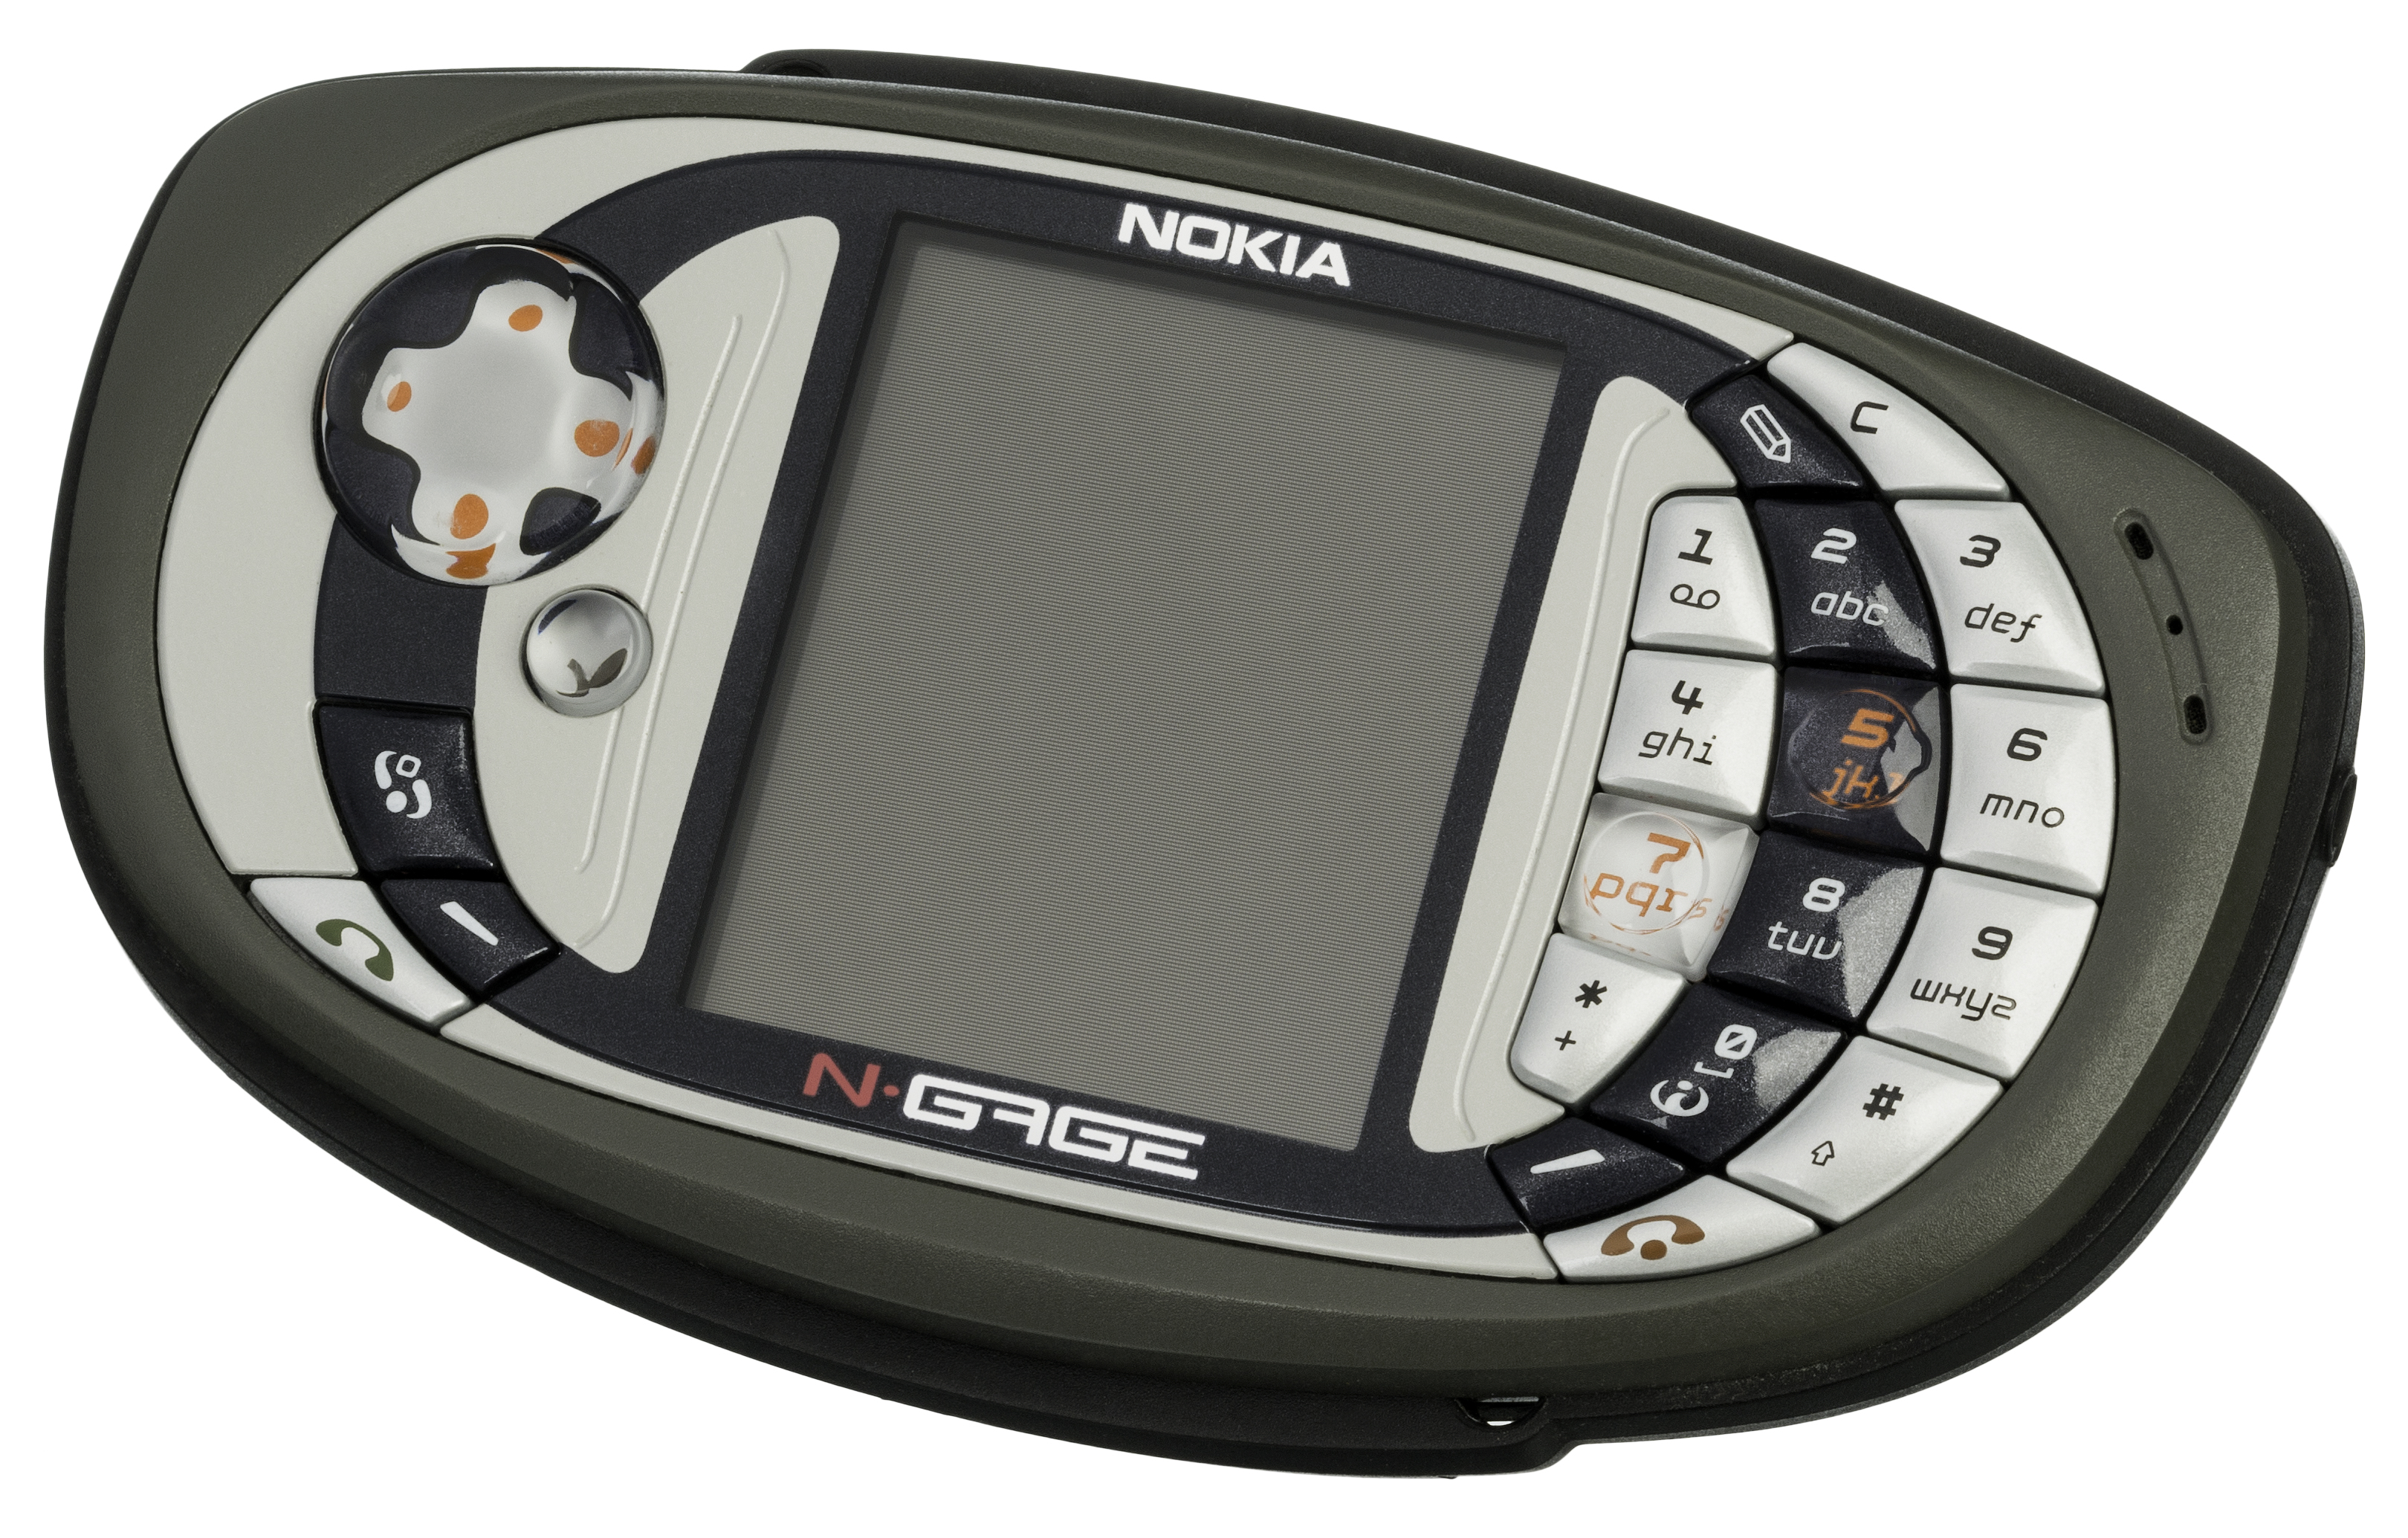 N-Gage (device) - Wikipedia, the free encyclopedia